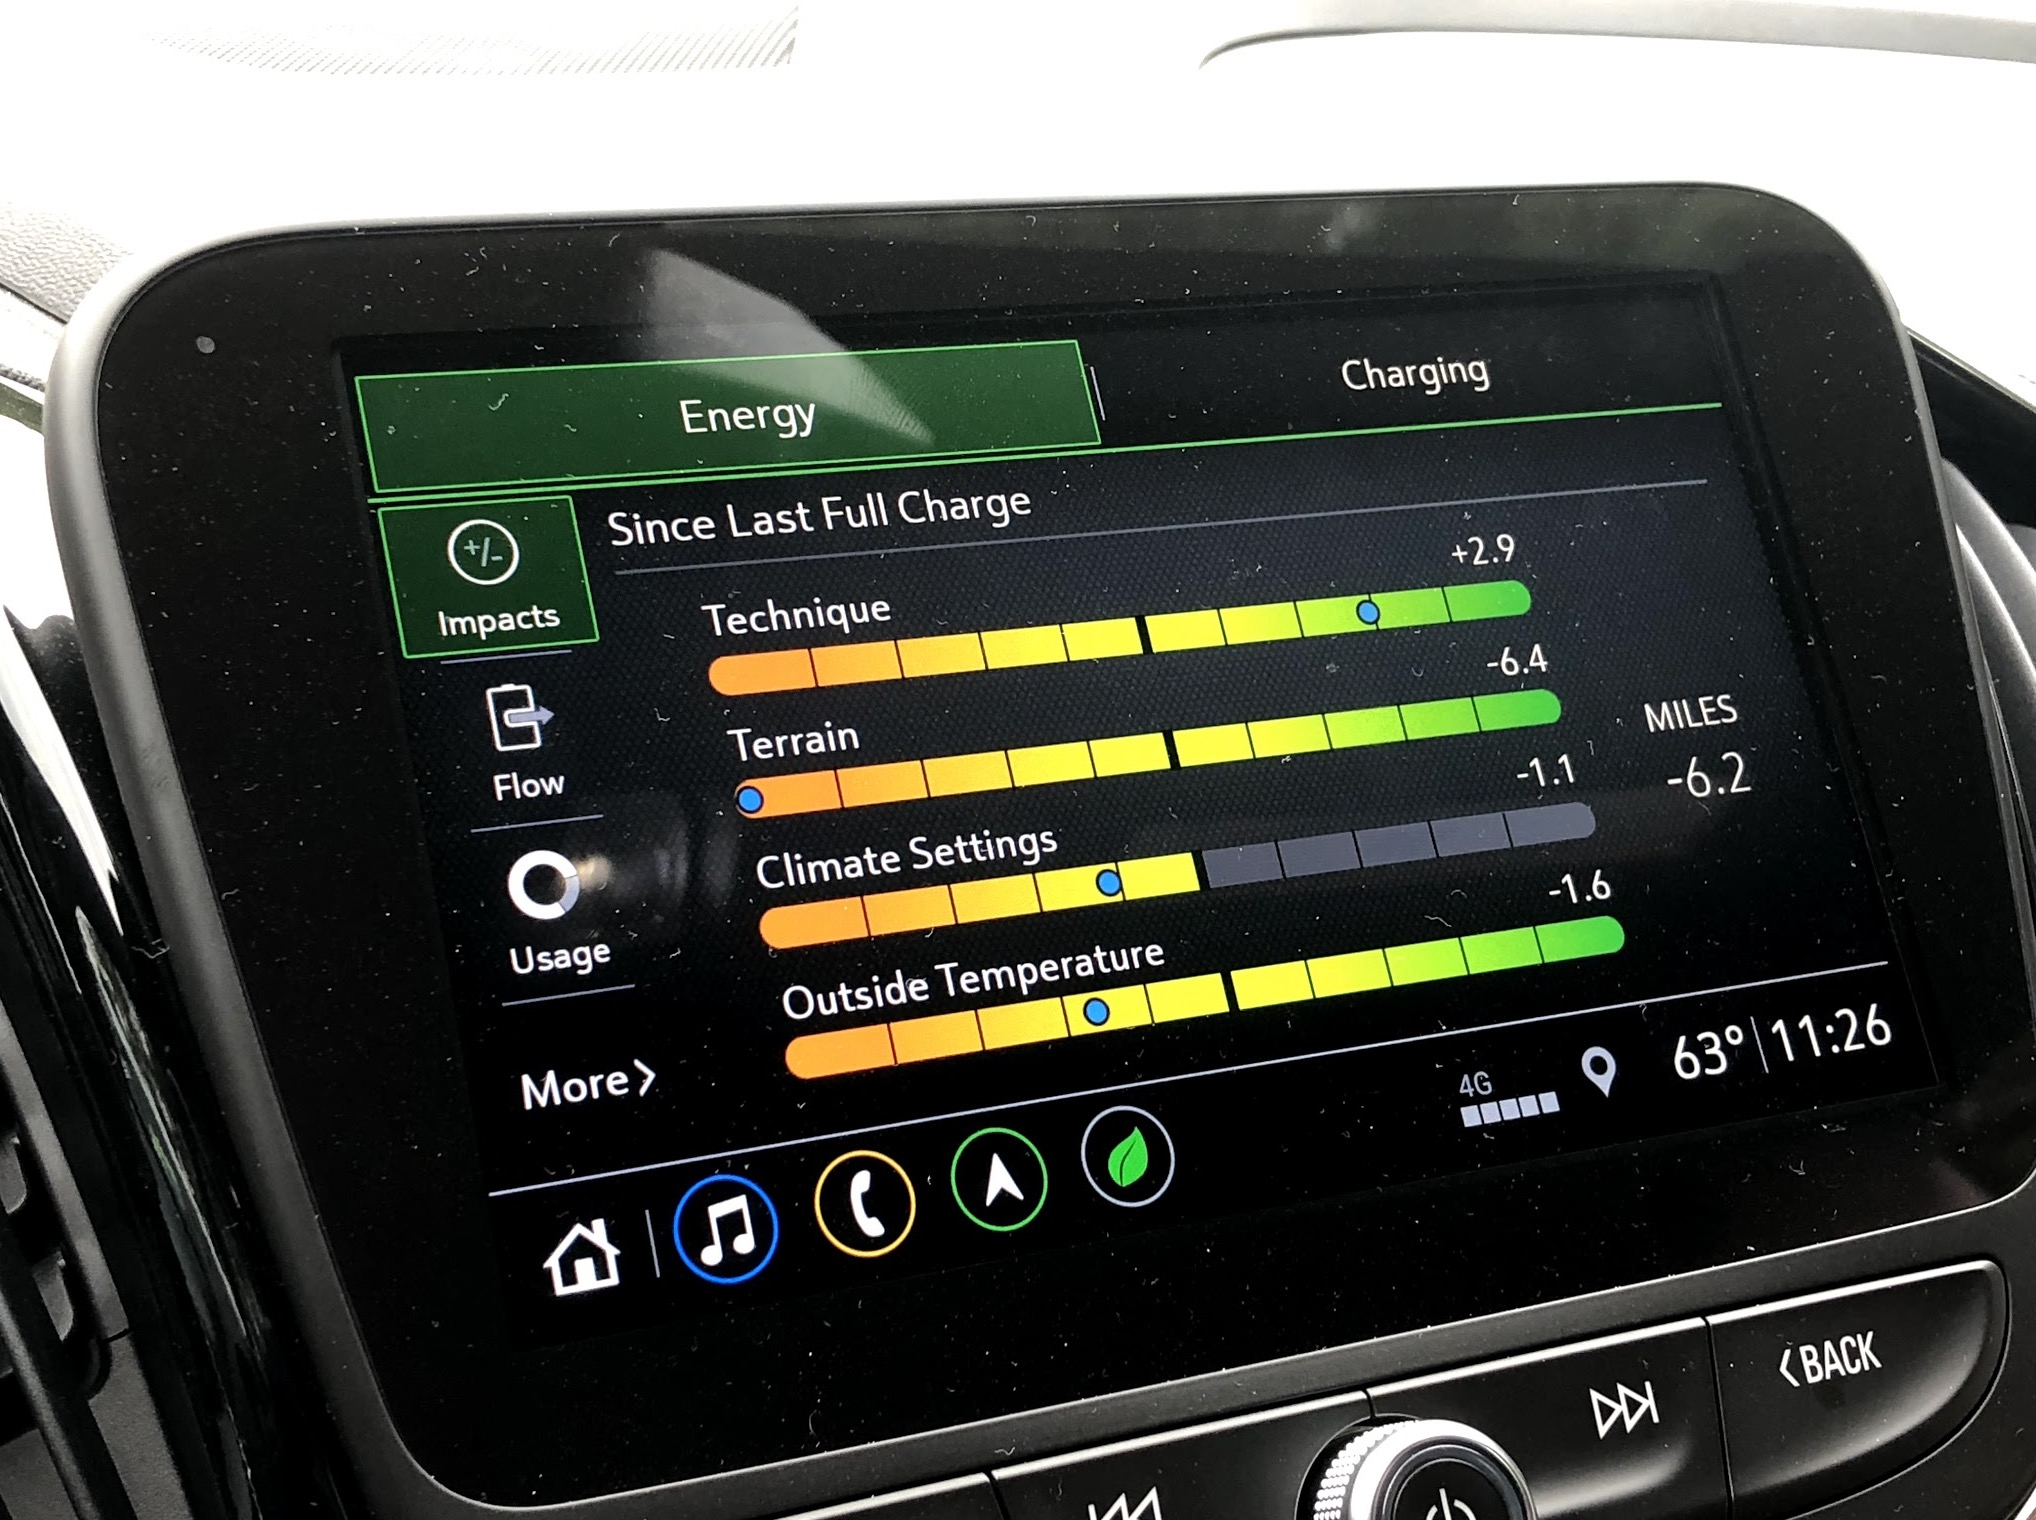 The 2019 Chevy Volt enables you to get more all-electric mileage